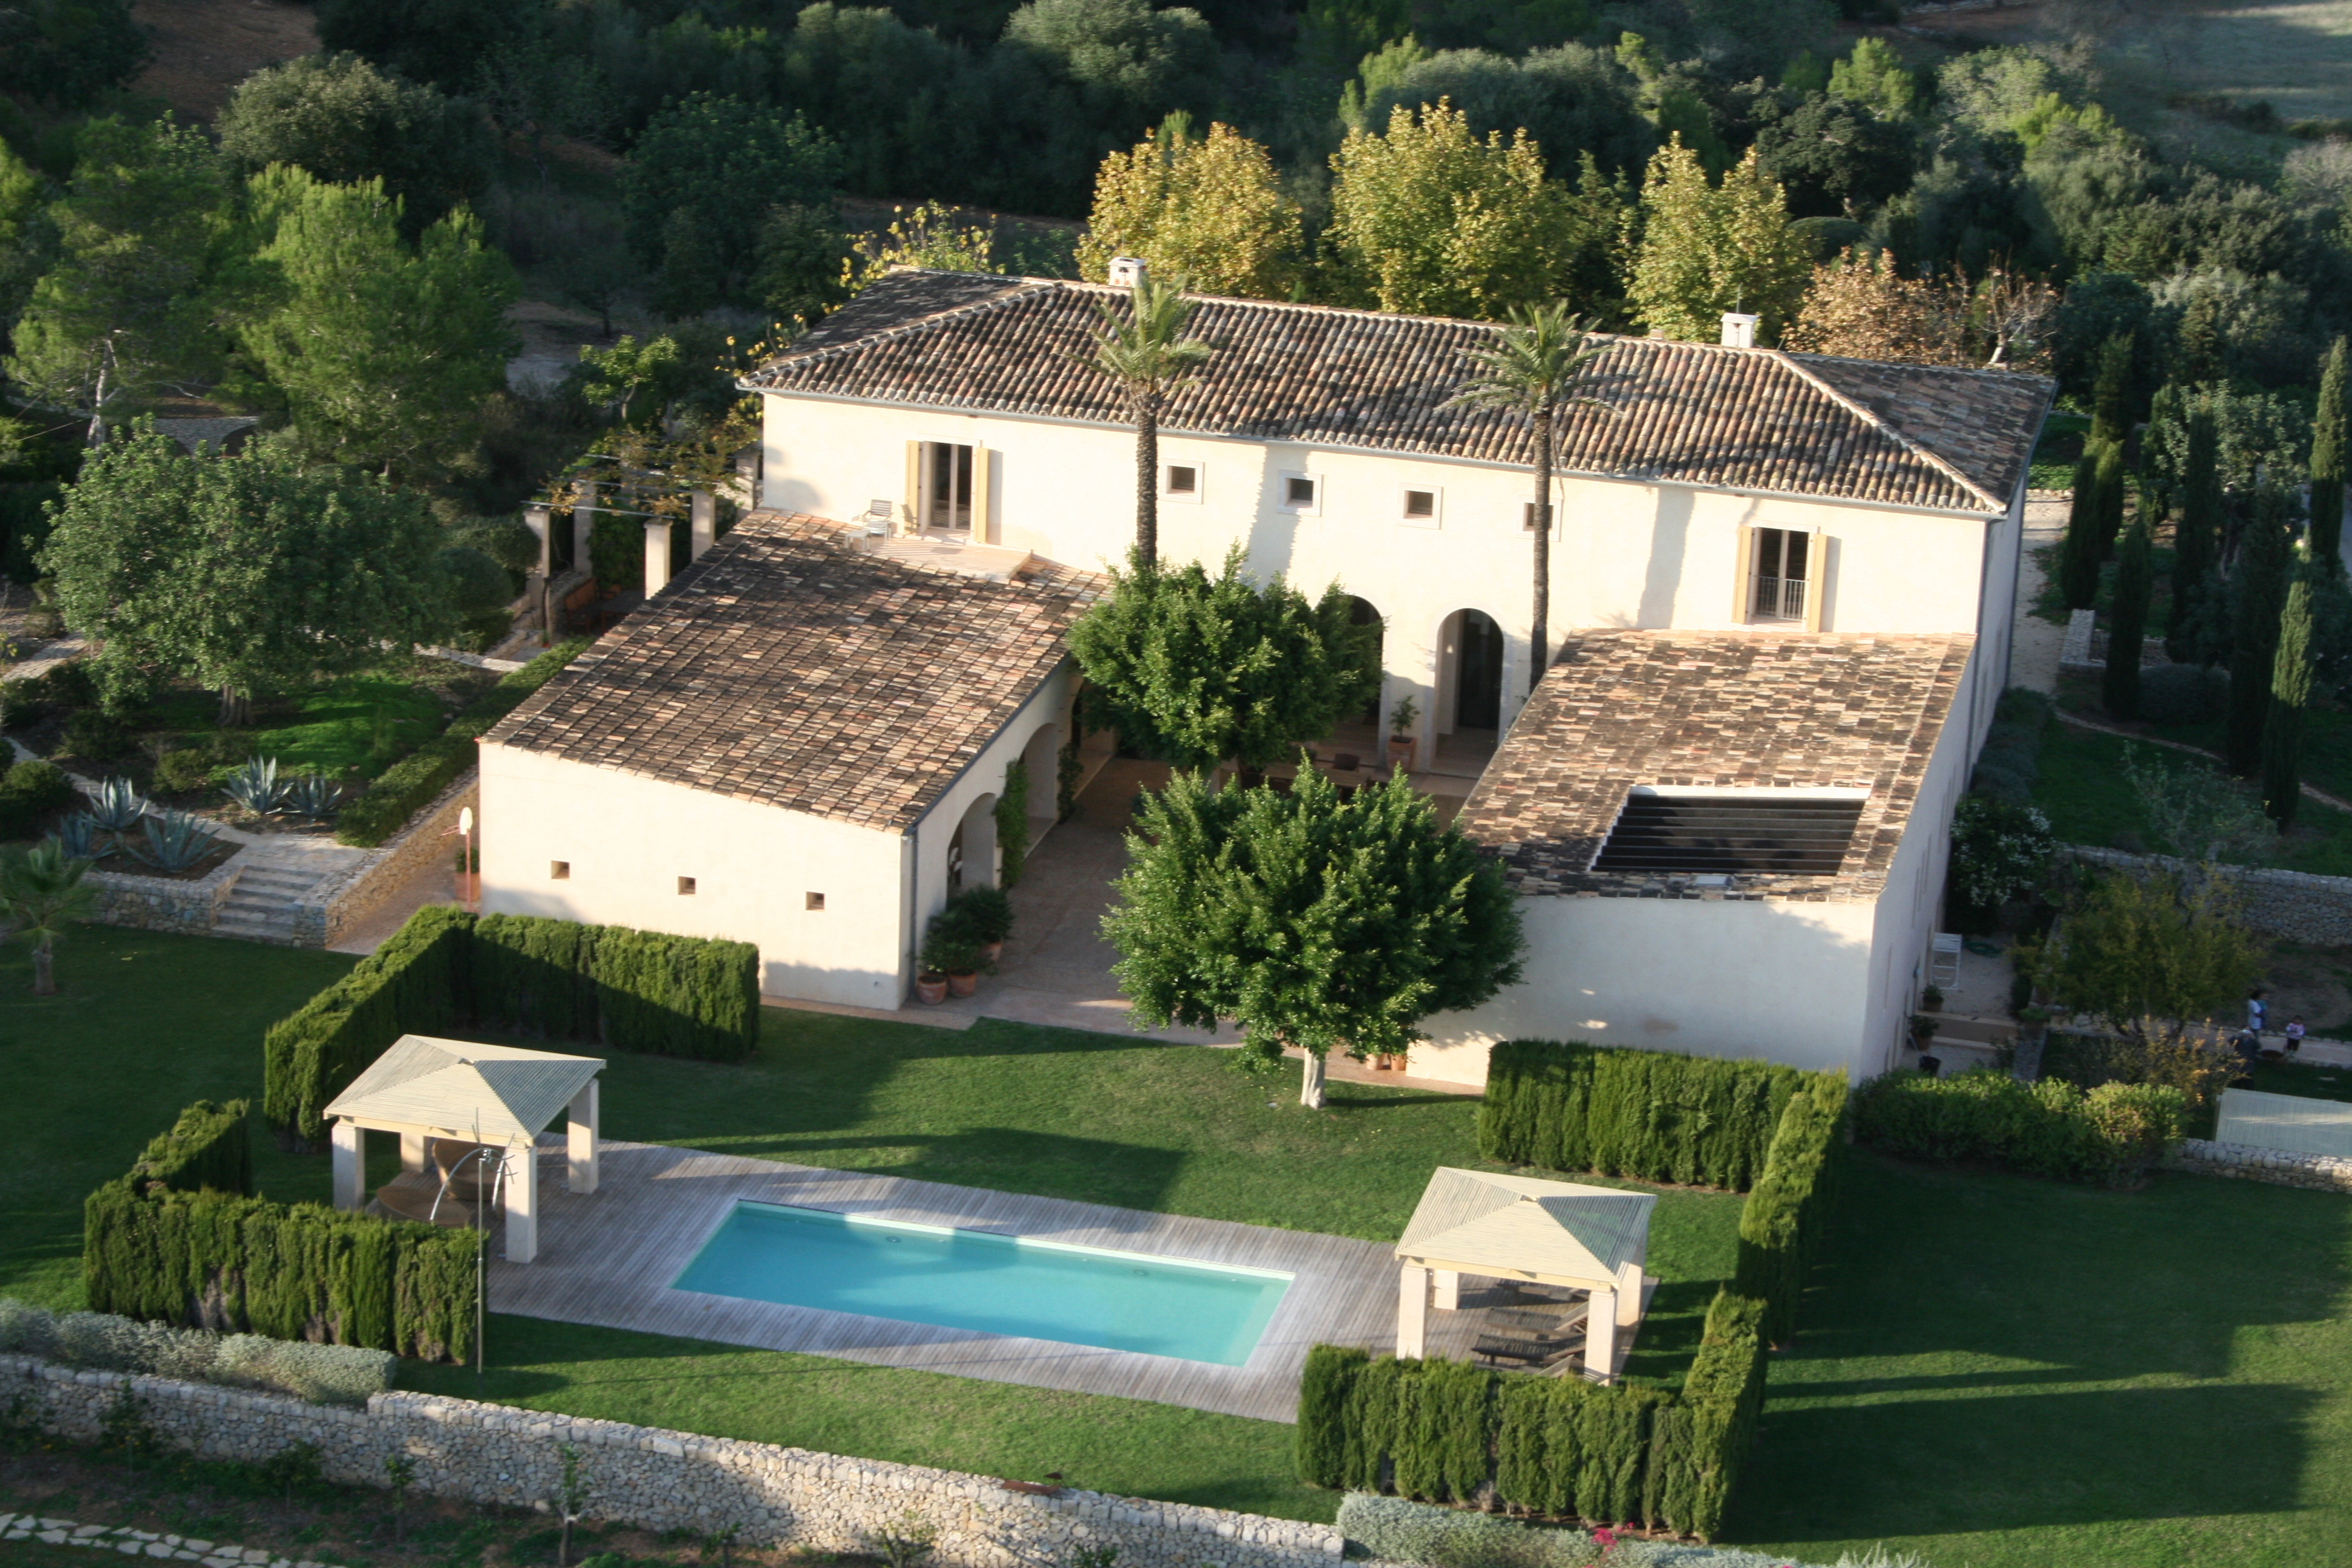 luxury villa rental, Spain, ESPMAJ 1766